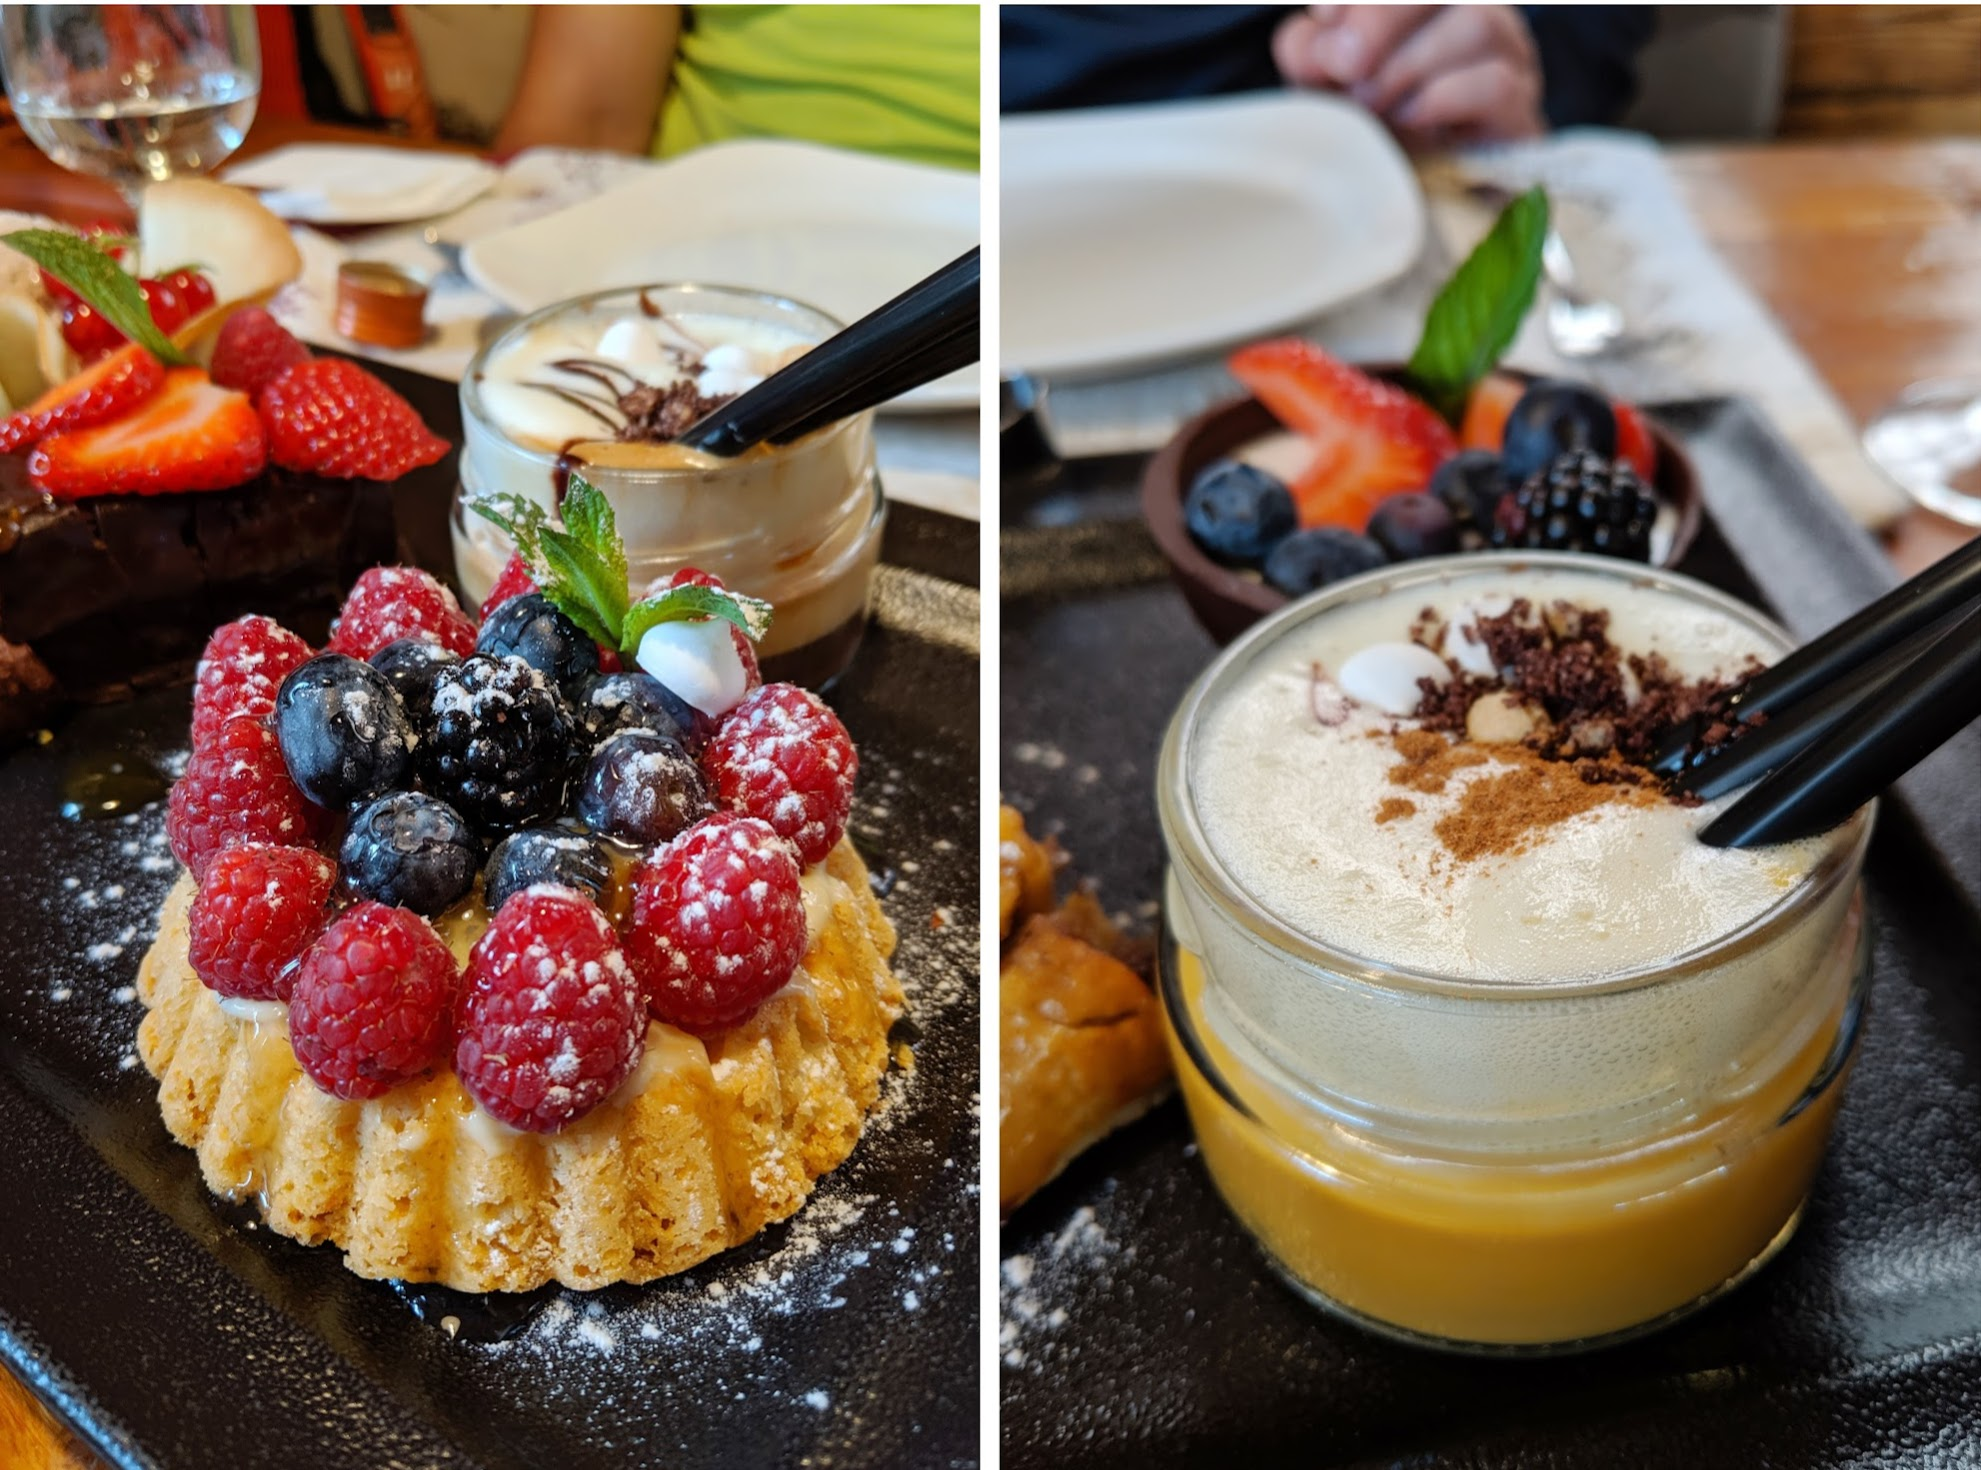 The desserts at Rifugio La Roda